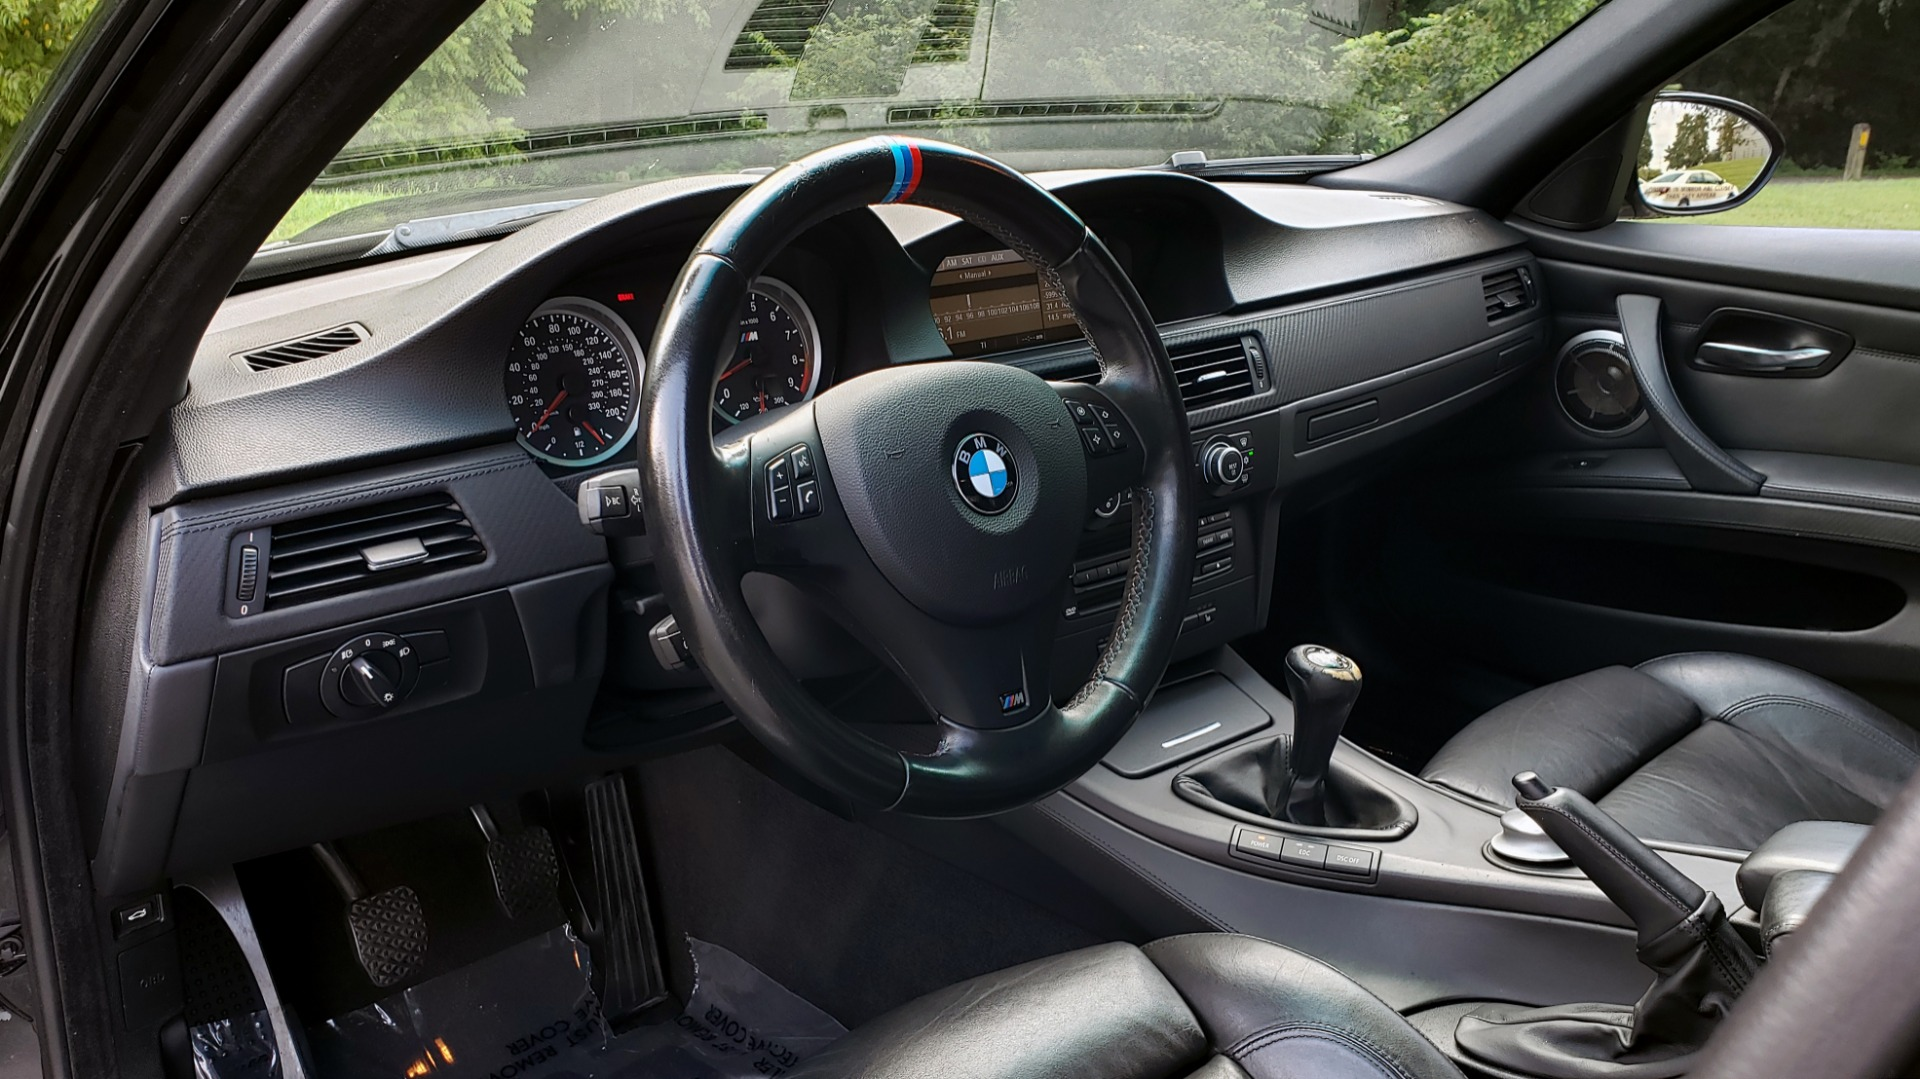 Used 2008 BMW 3 SERIES M3 PREMIUM / TECH / PDC / SUNROOF / 4.0L V8 / 6-SPD MANUAL for sale Sold at Formula Imports in Charlotte NC 28227 42